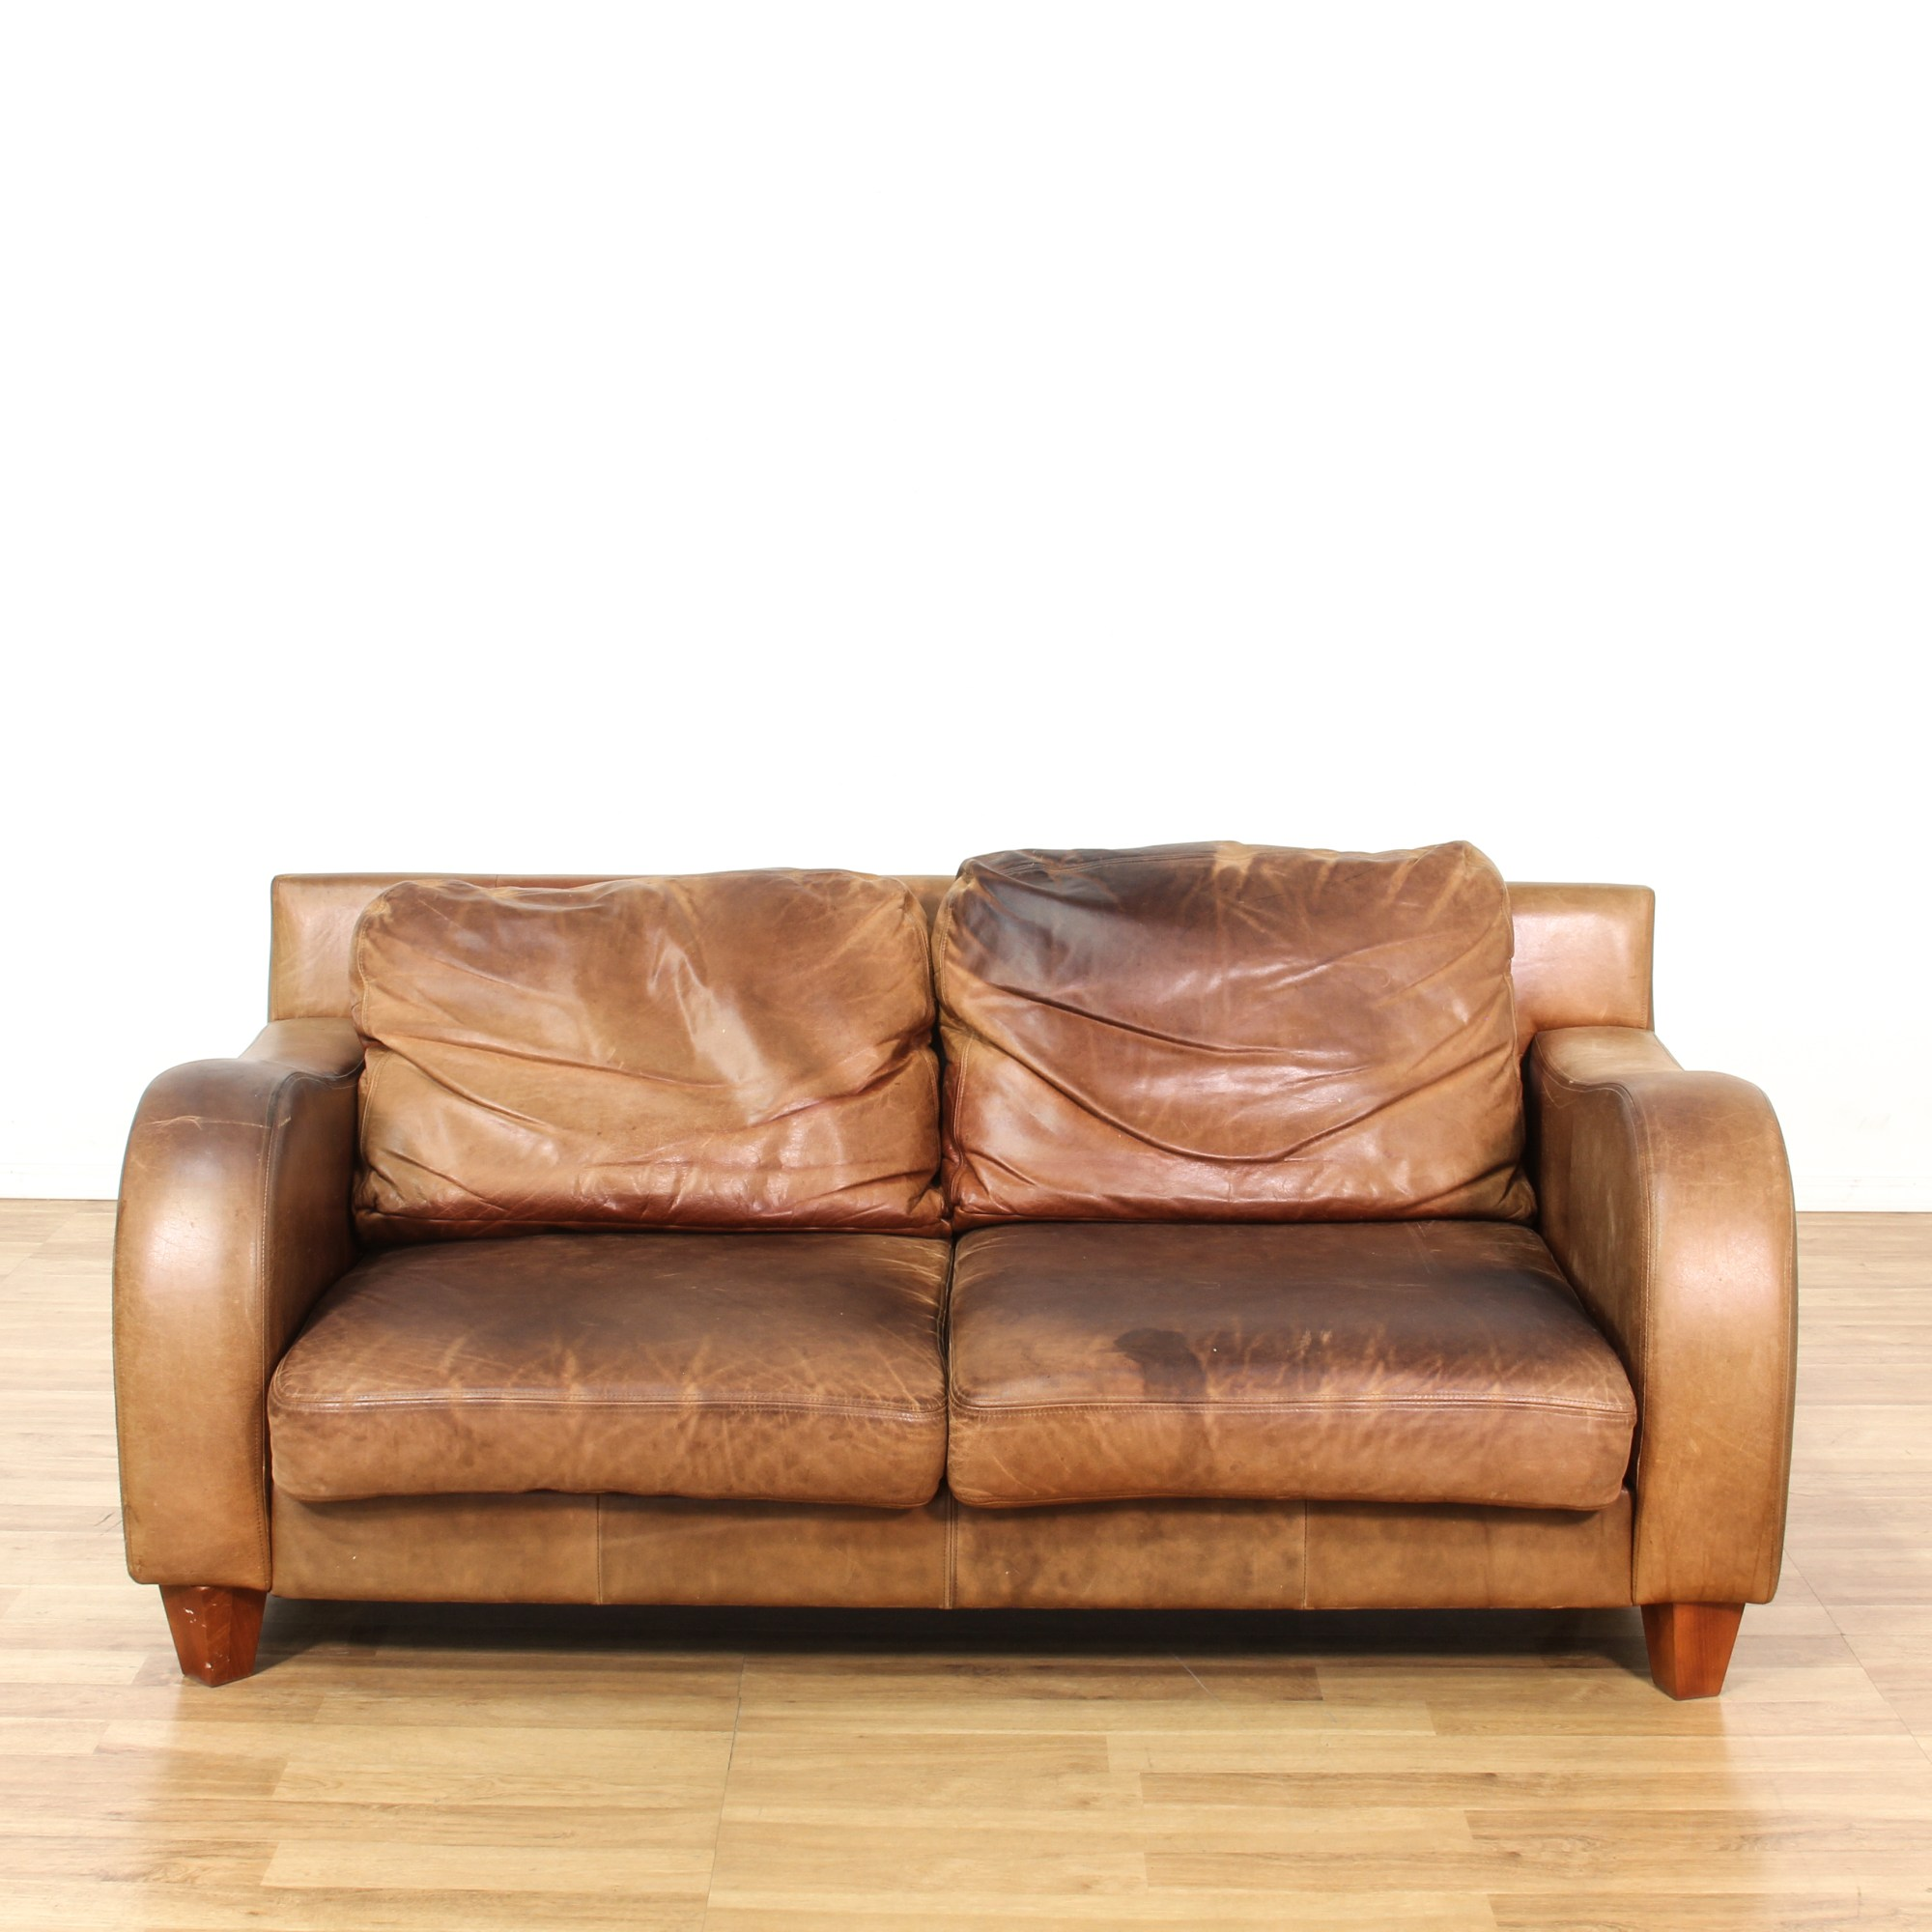 Curved Arm Leather Sofa